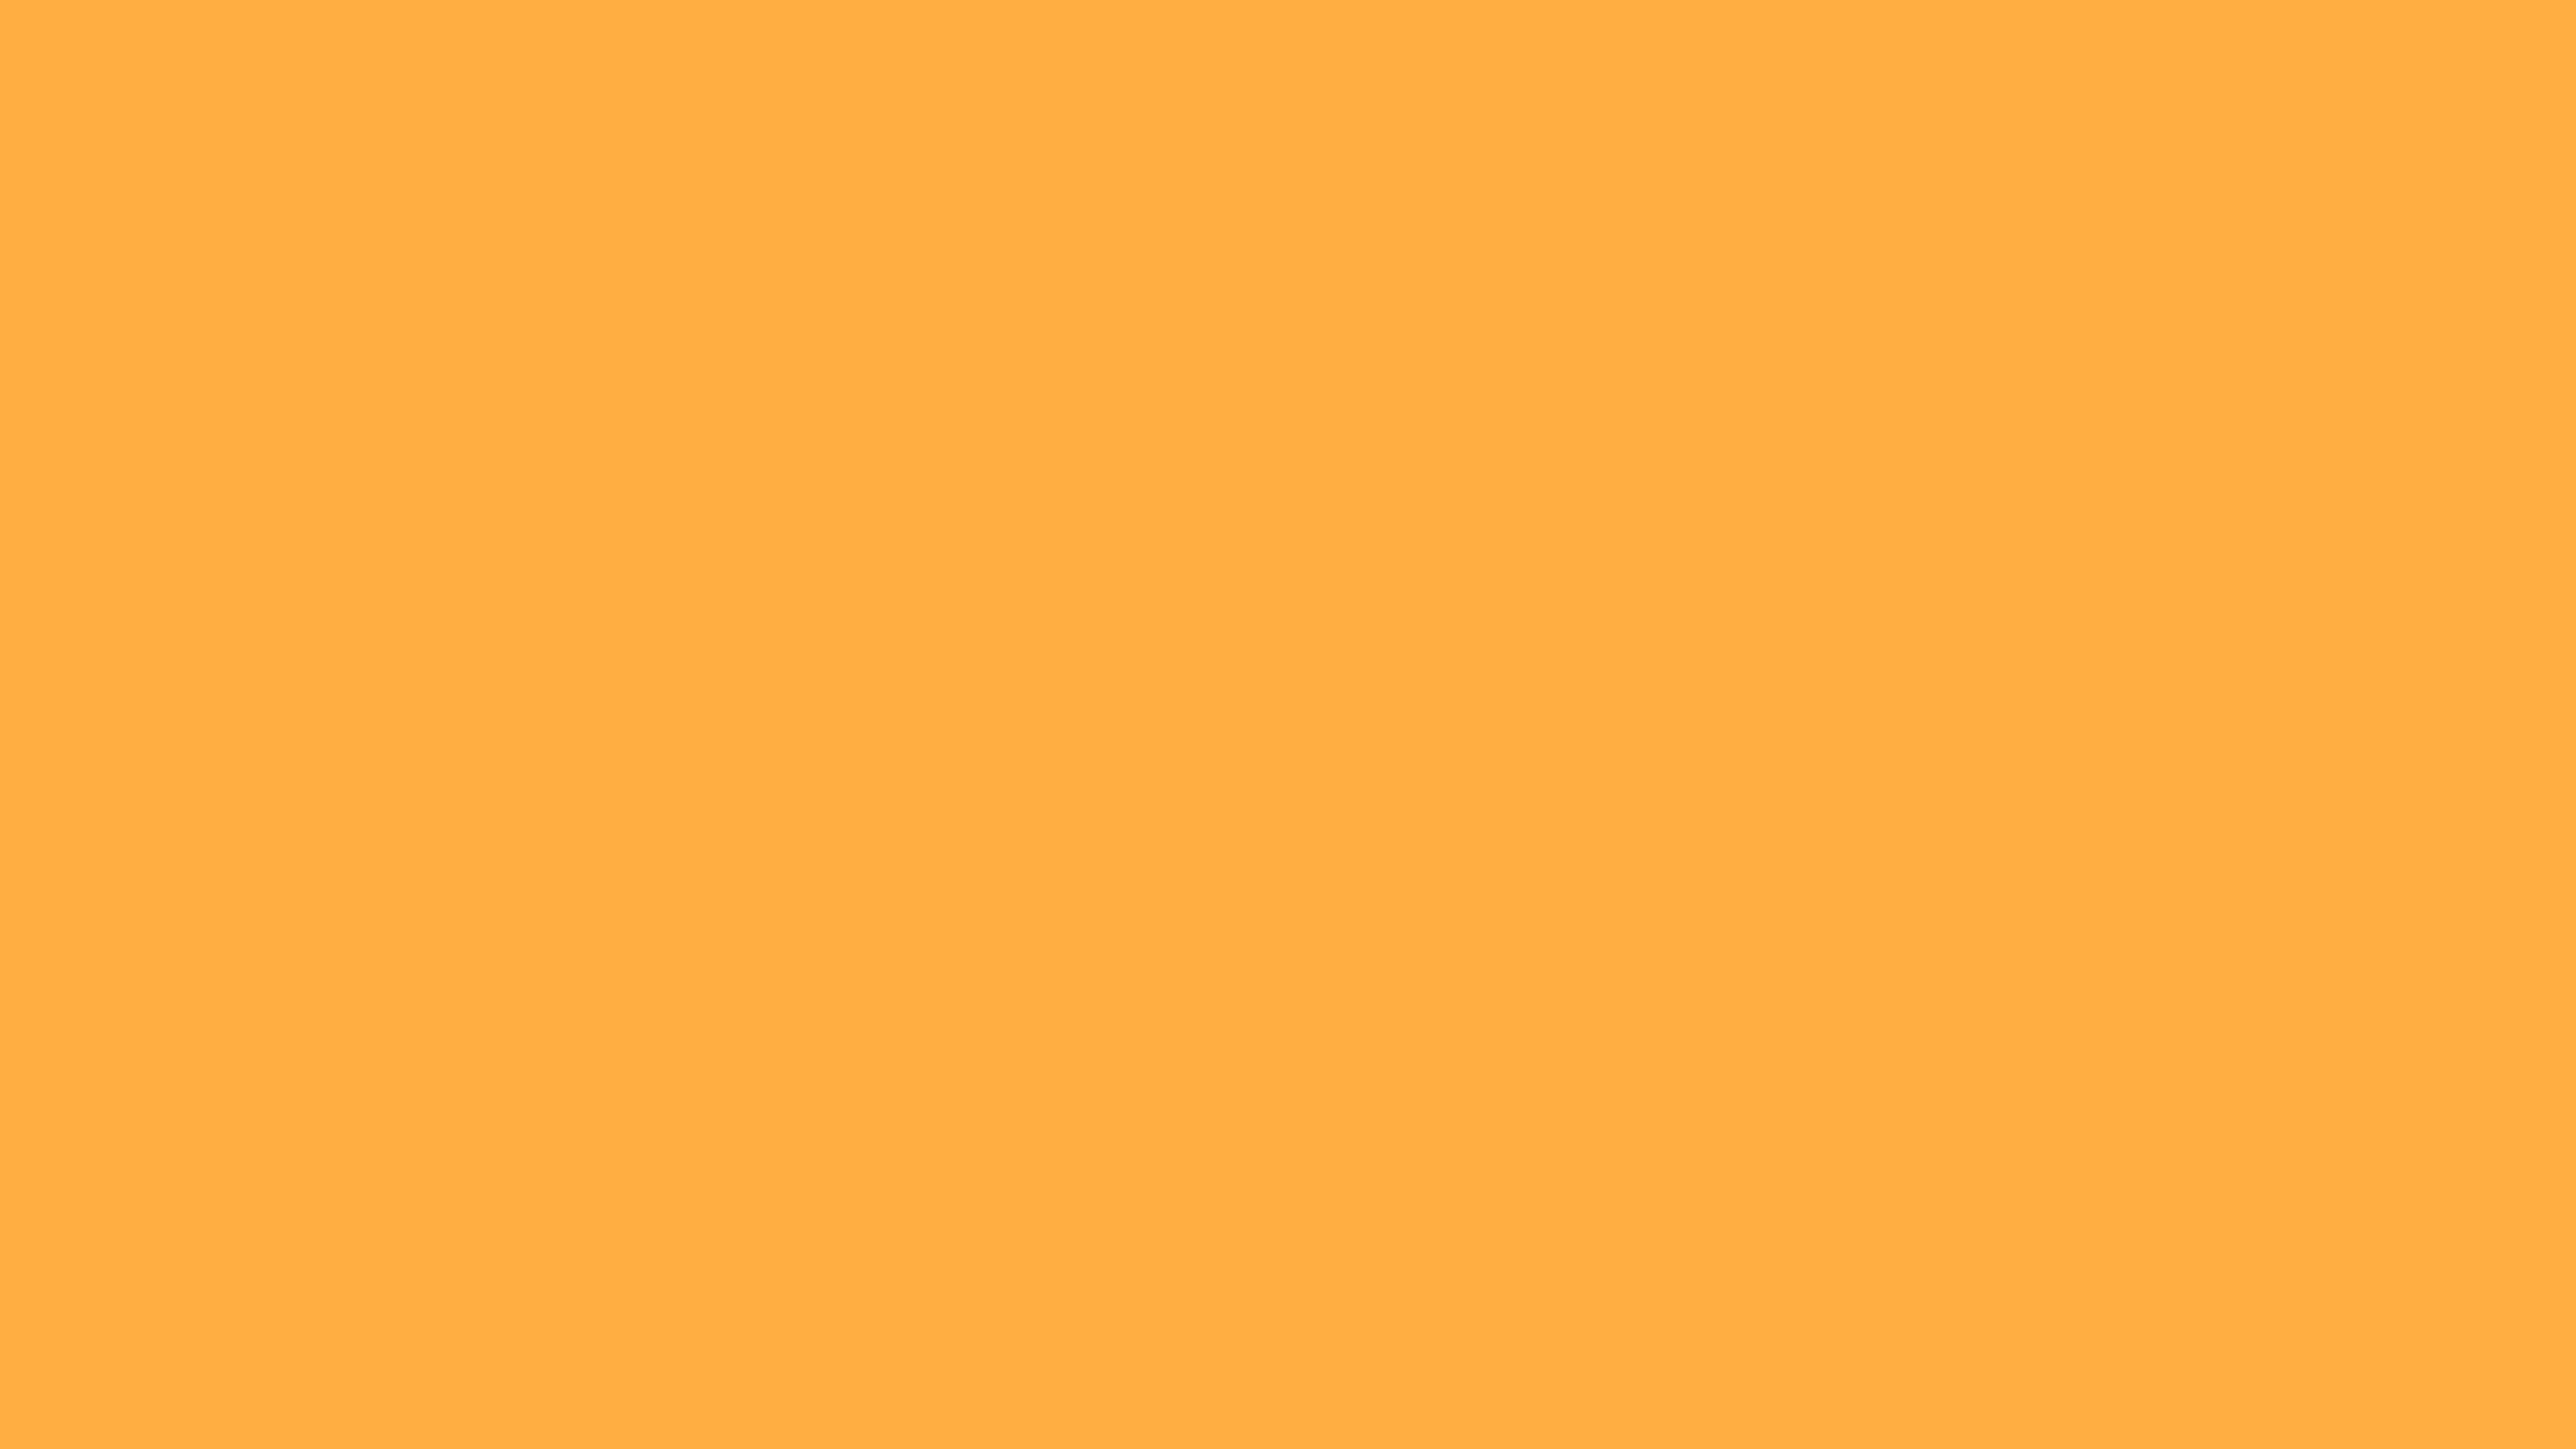 3840x2160 Yellow Orange Solid Color Background